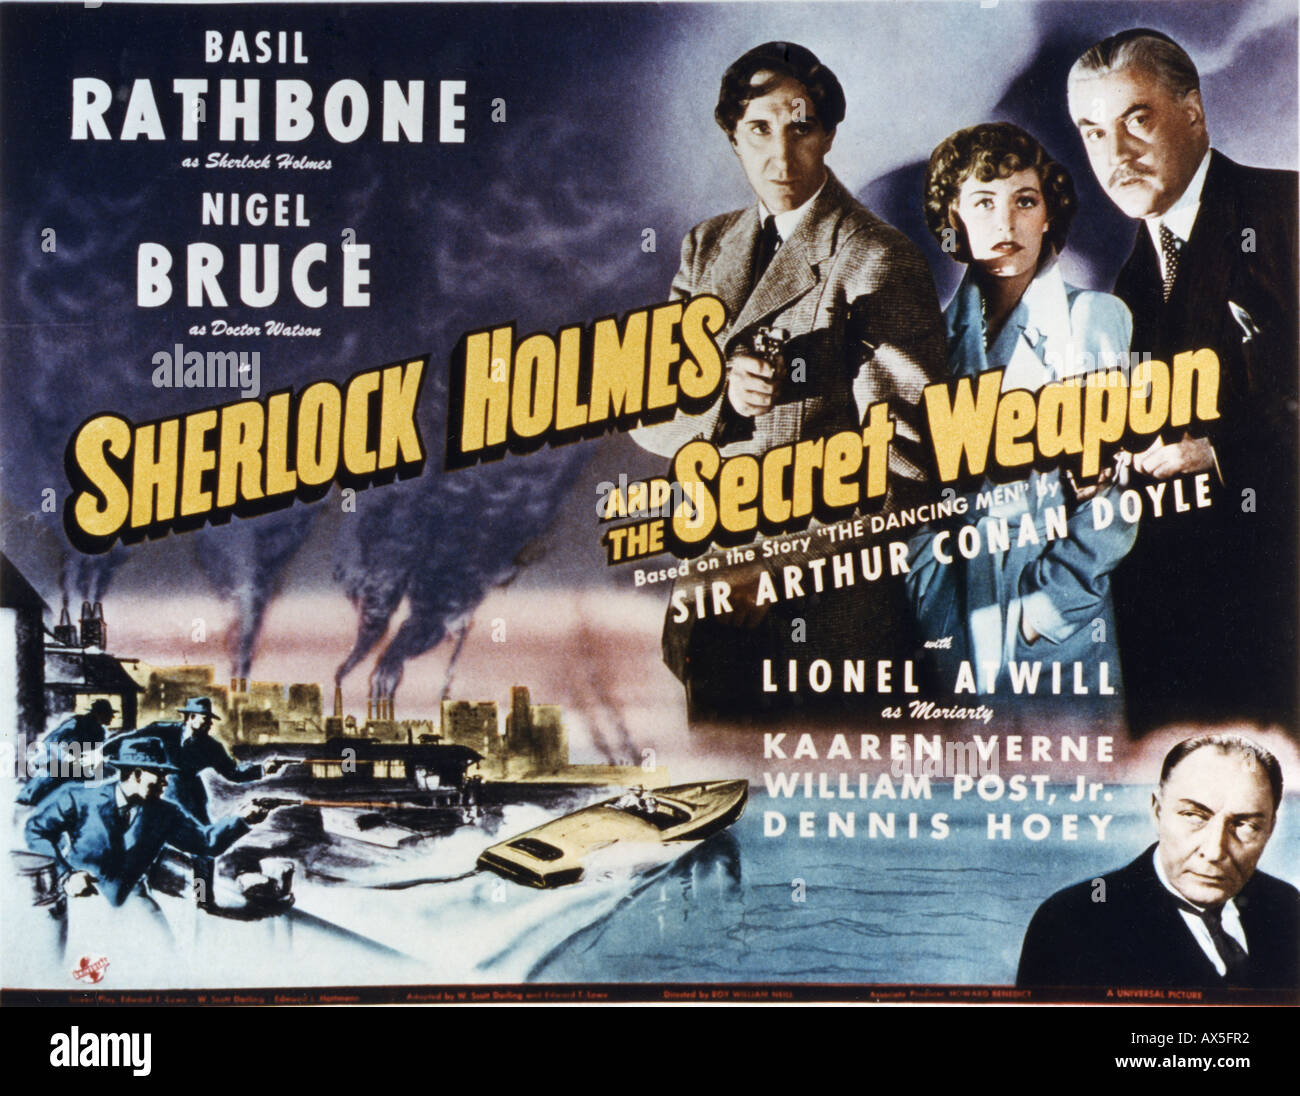 SHERLOCK HOLMES AND THE SECRET WEAPON poster for 1942 Universal film - Stock Image